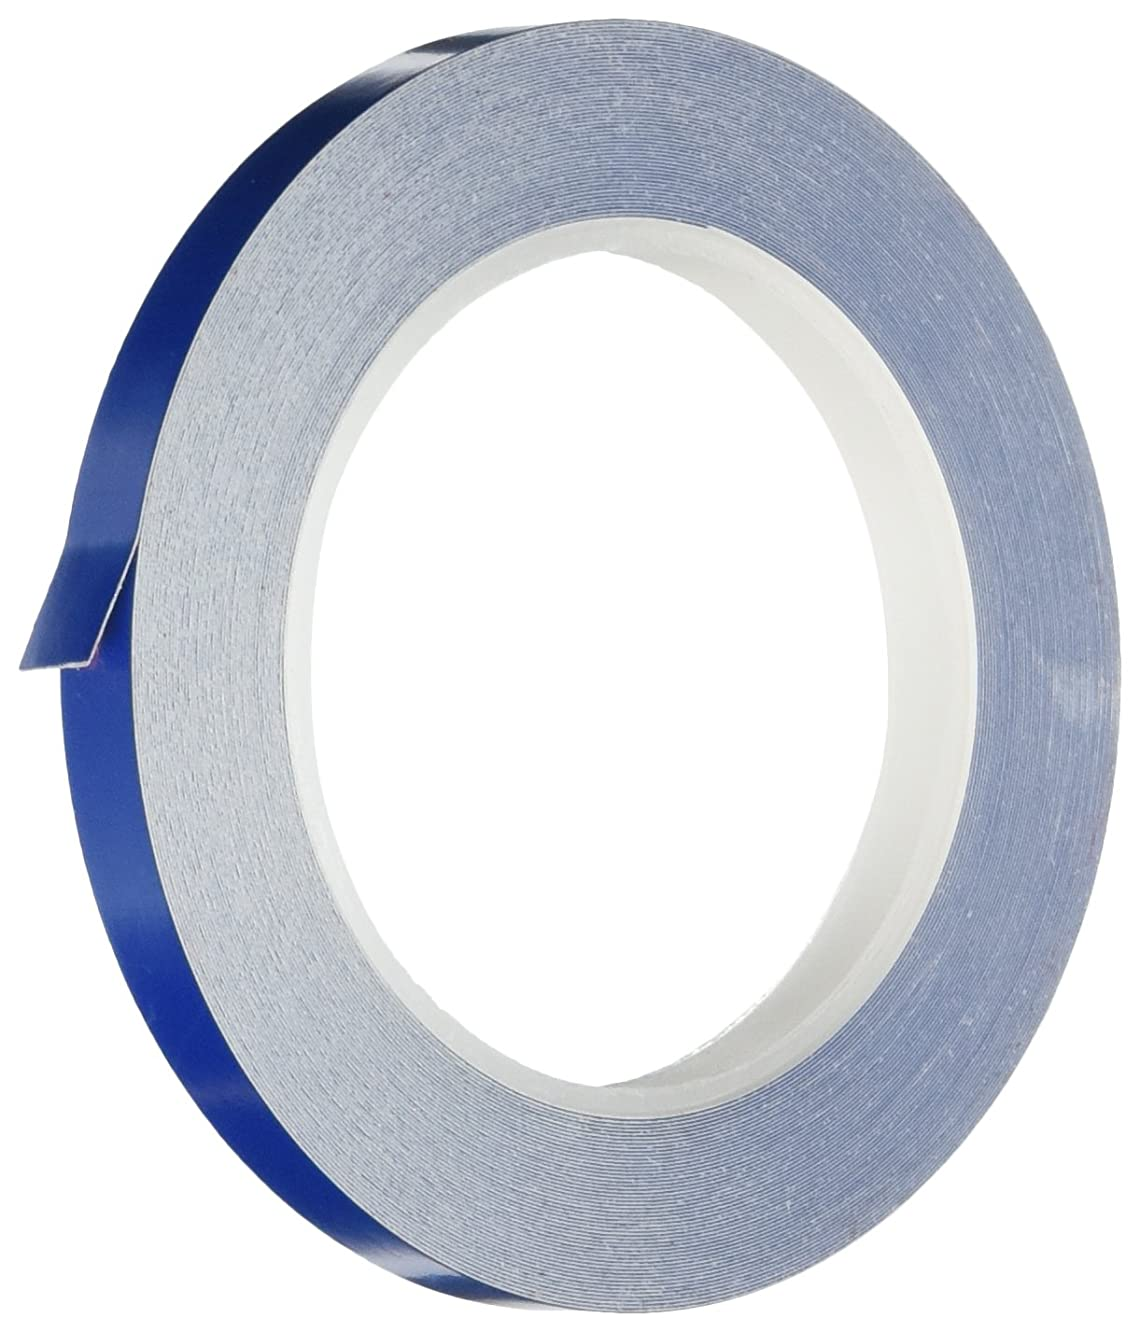 Trimbrite T1226 Trim Stripe 1/4 Blue